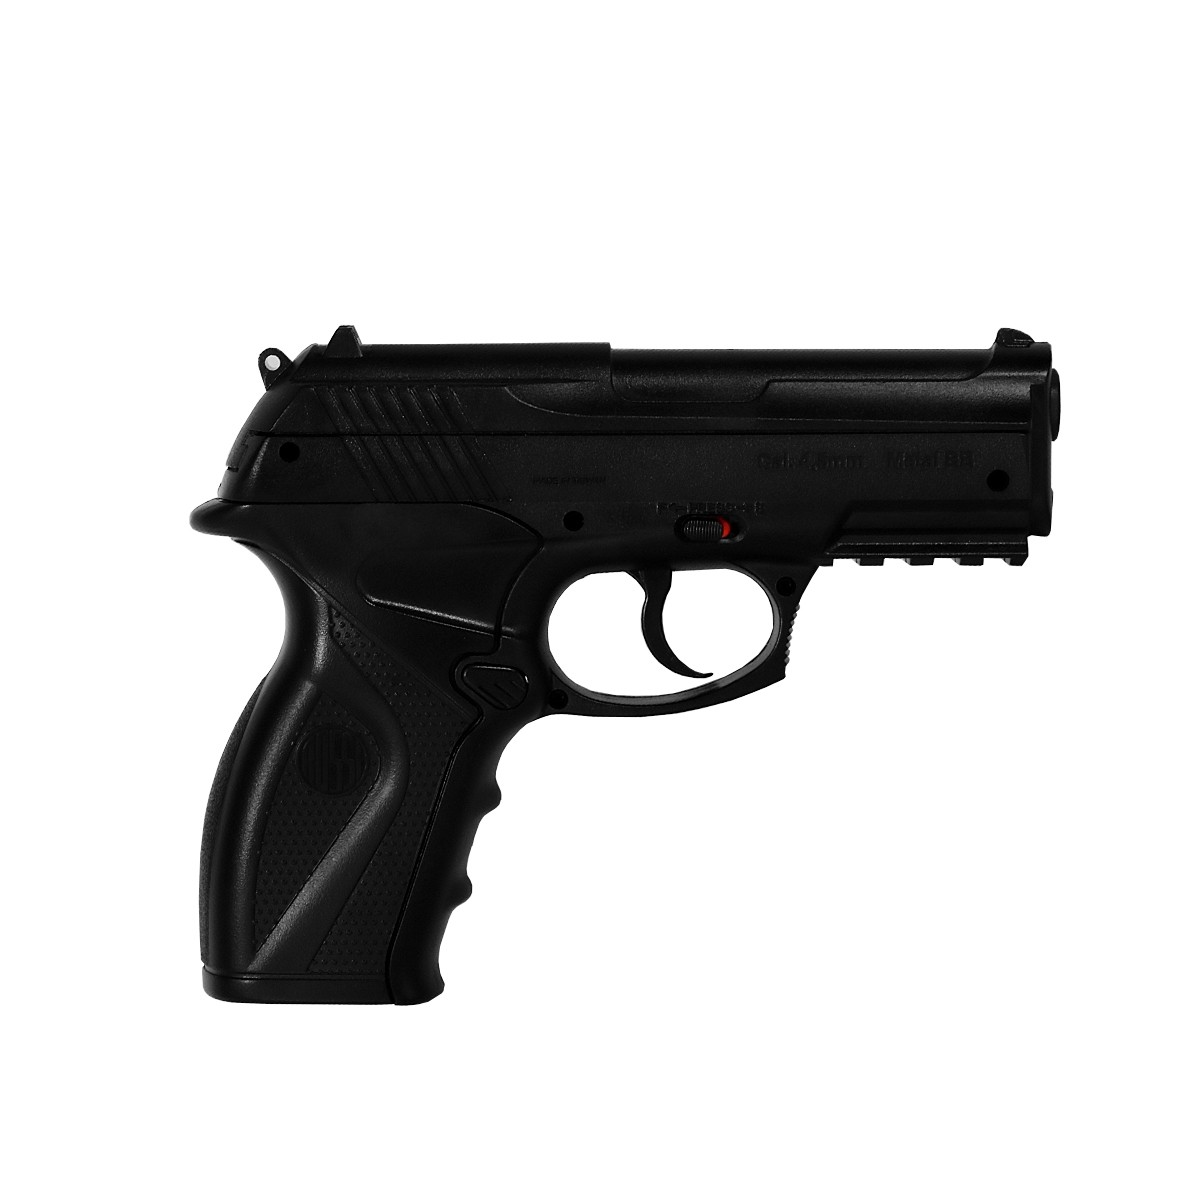 Pistola de pressão CO2 C11 Wingun 4,5mm